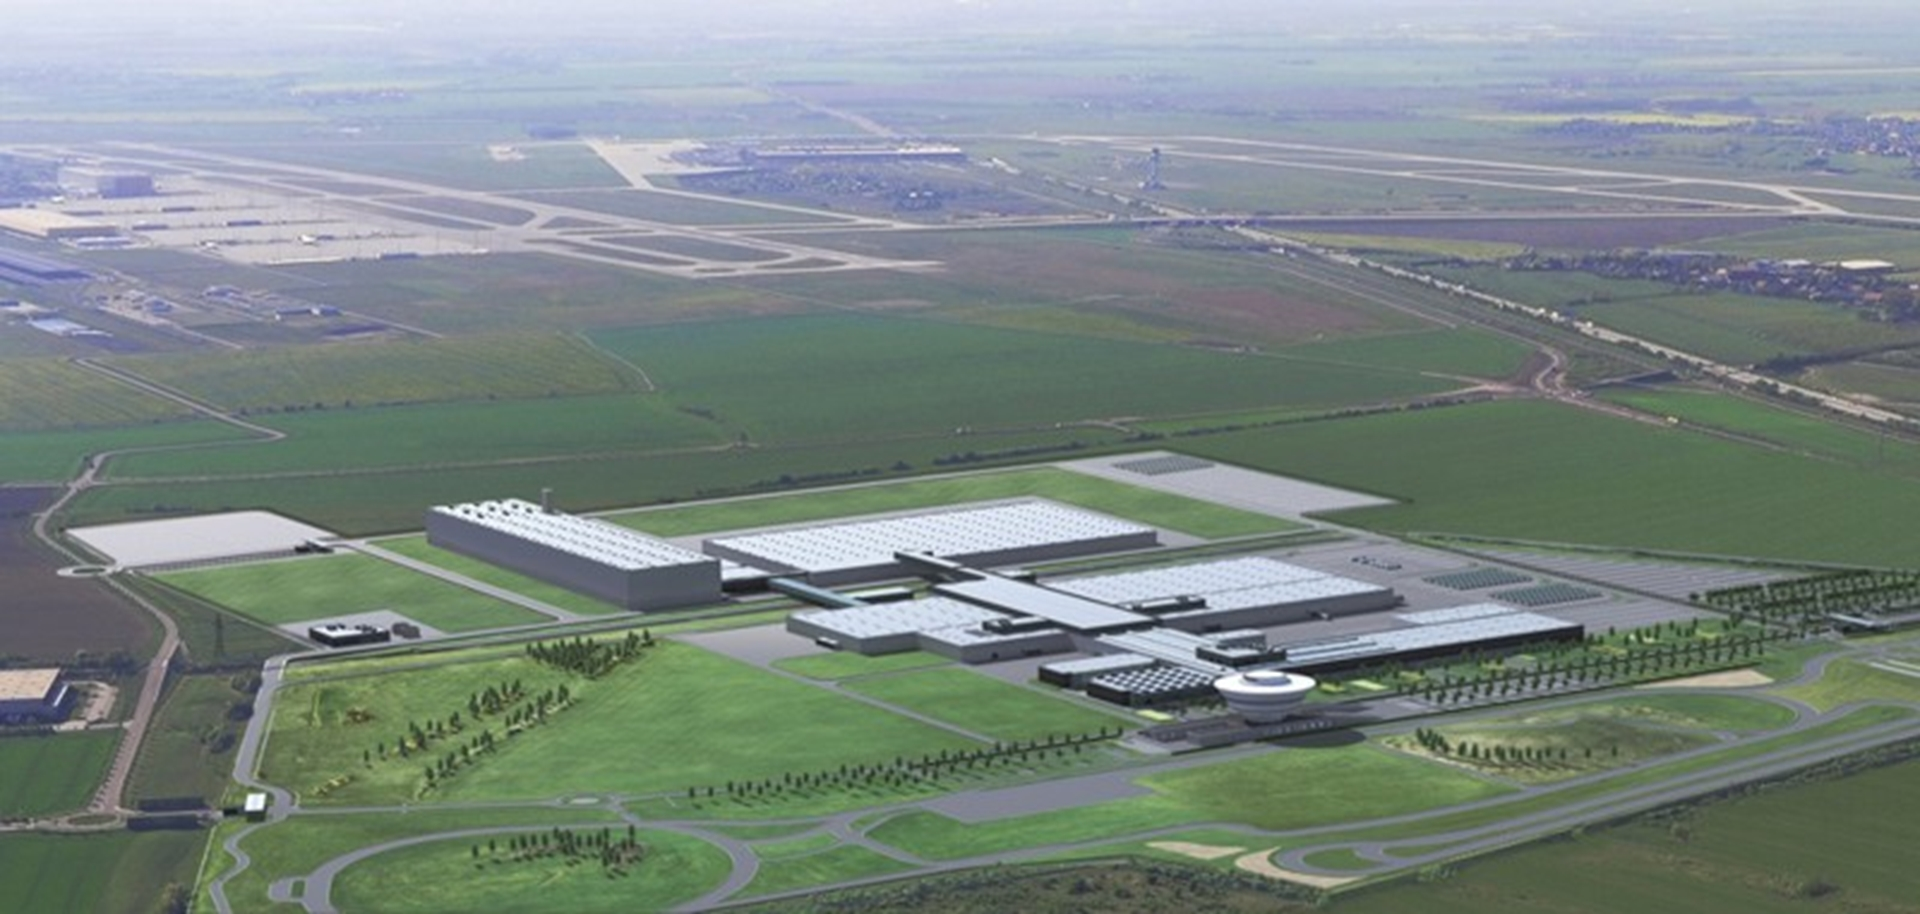 The planned extension to the Porsche Leipzig production site